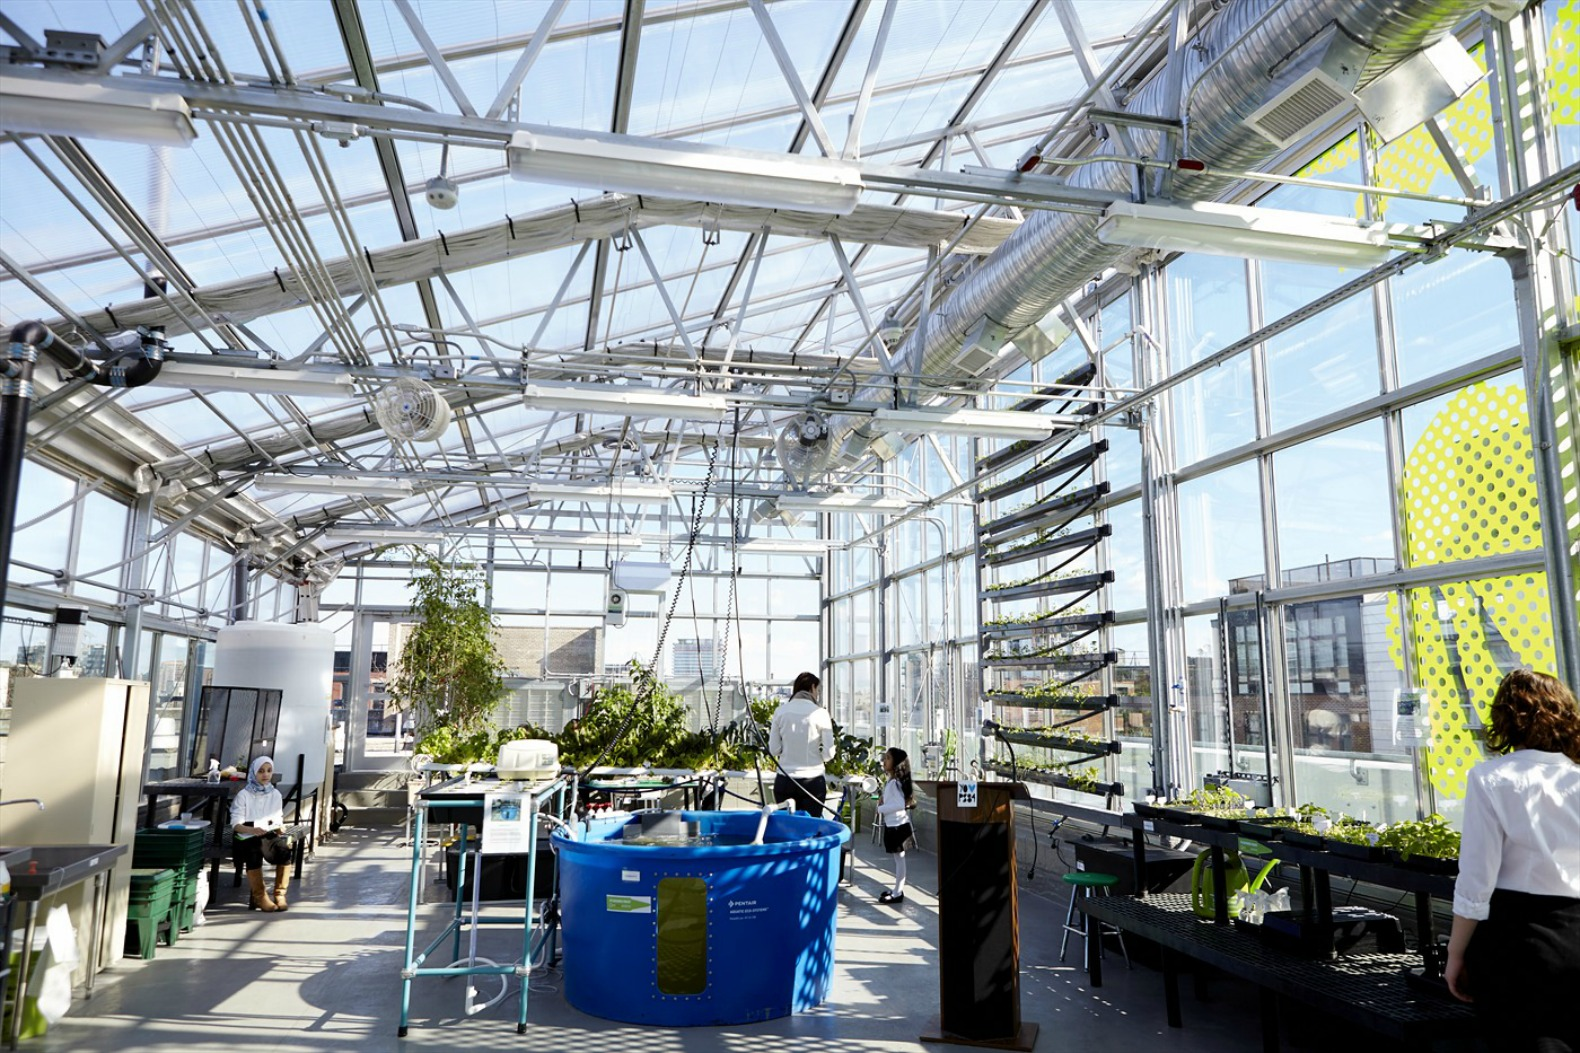 High Tech Hydroponic Rooftop Greenhouse Opens Atop Williamsburgu0027s PS 84